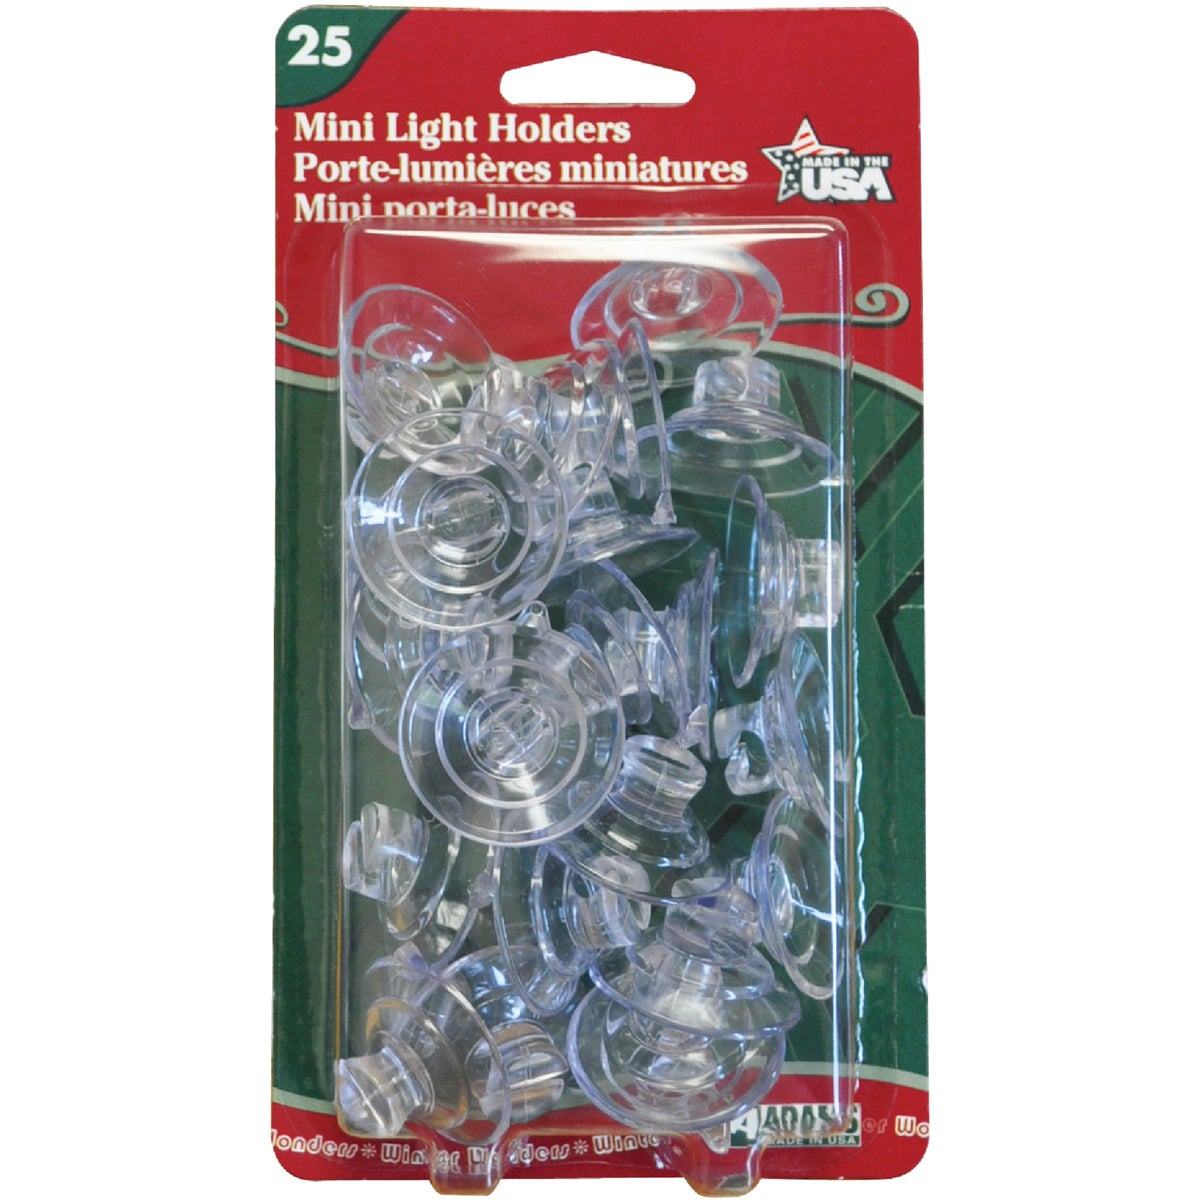 25PK LIGHT HOLDERS - 7501001040 by Adams Mfg/christmas